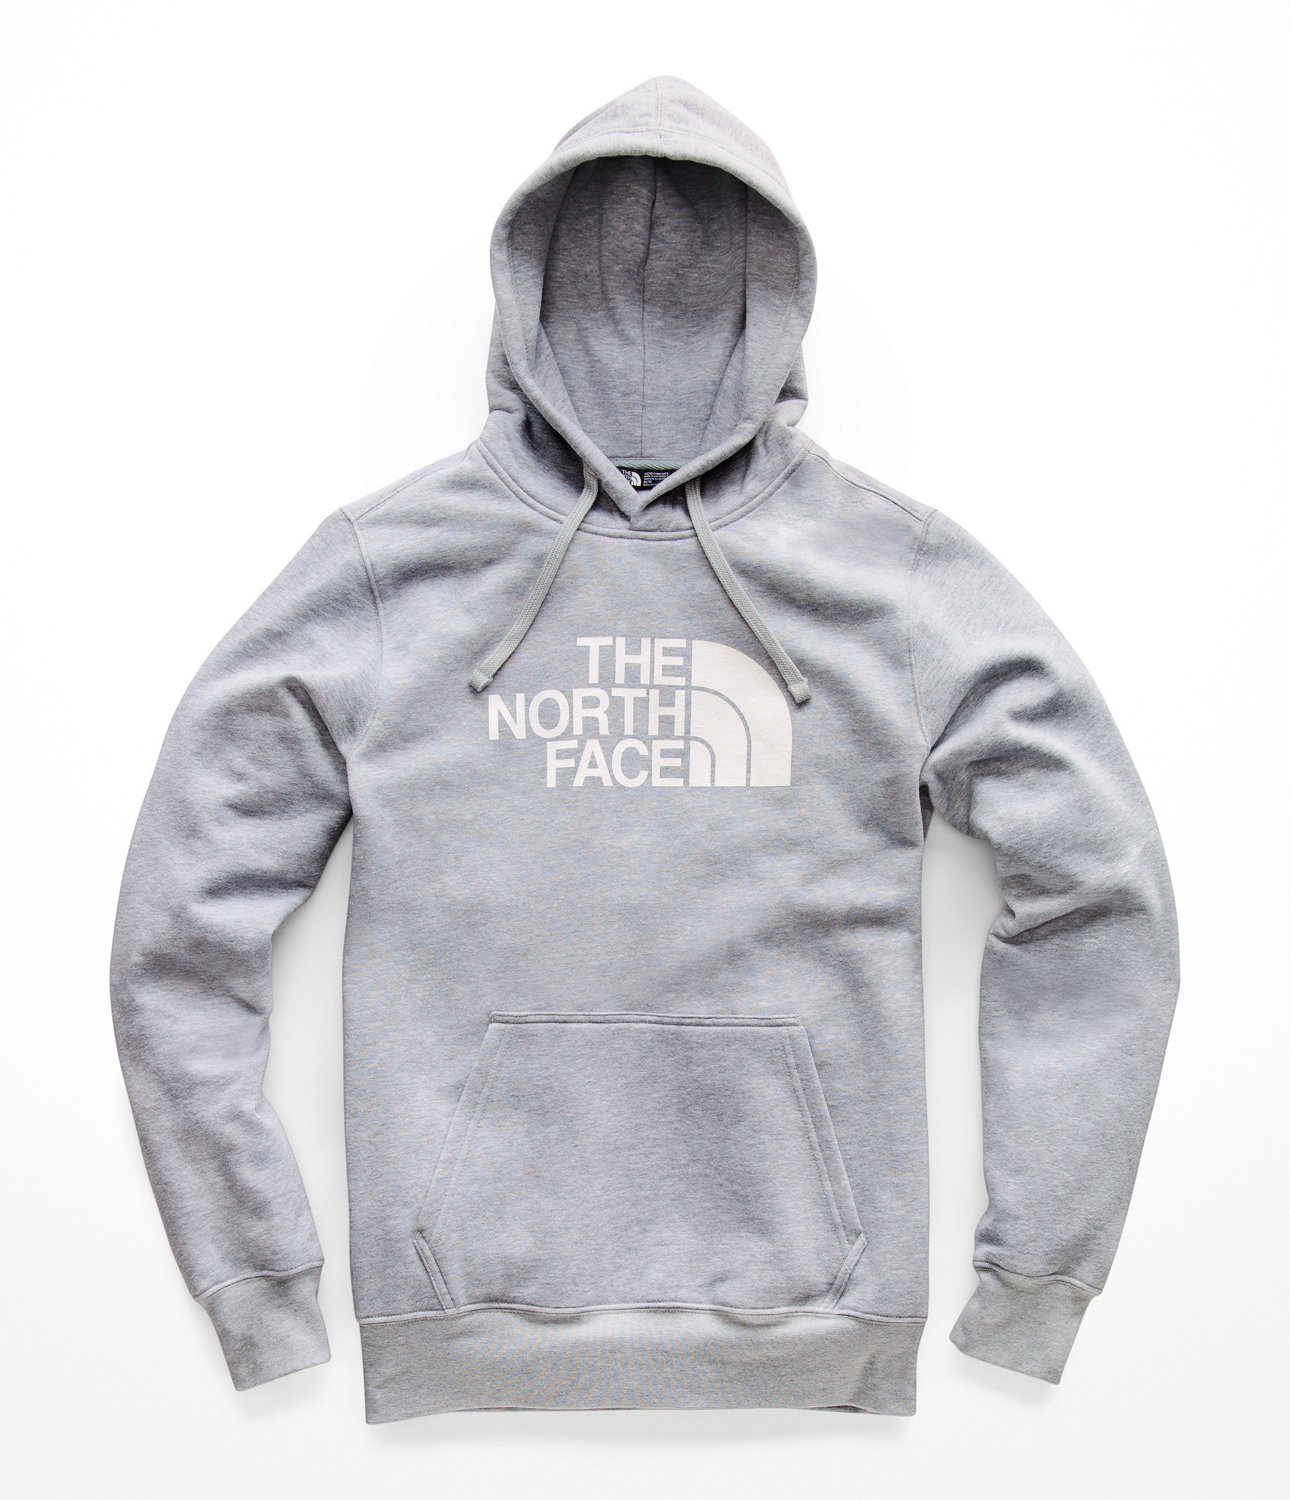 c857af58e The North Face Men's Urban Exploration Half Dome Pullover Hoodie